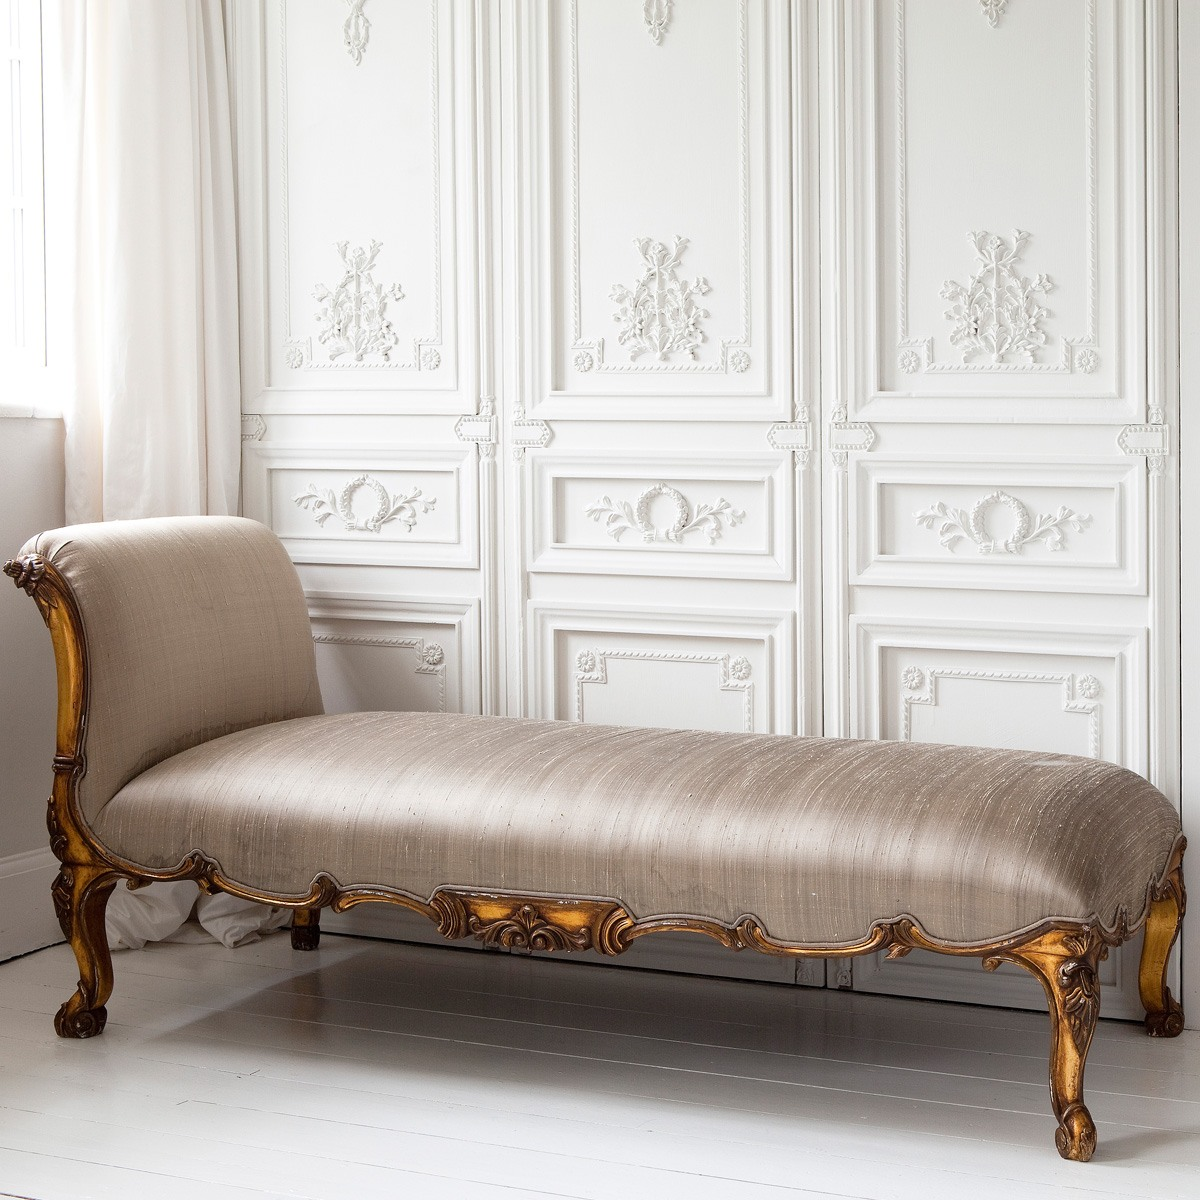 Versailles gold chaise longue french bedroom company for Chaise longue lounge